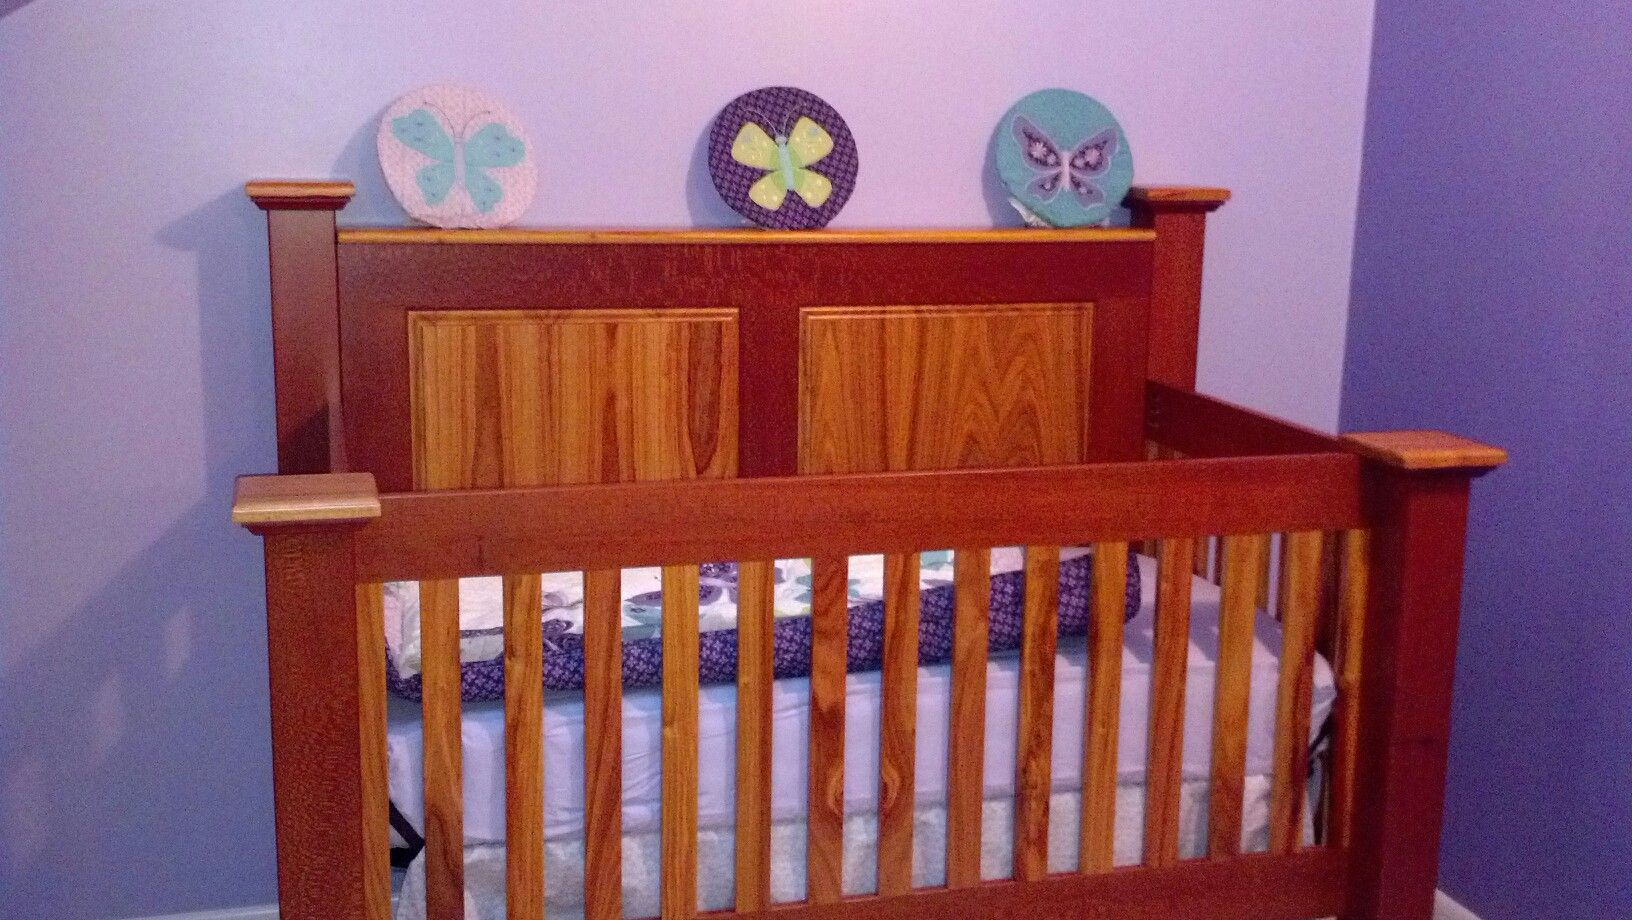 This crib was hand made by my son TOM For his baby girl!